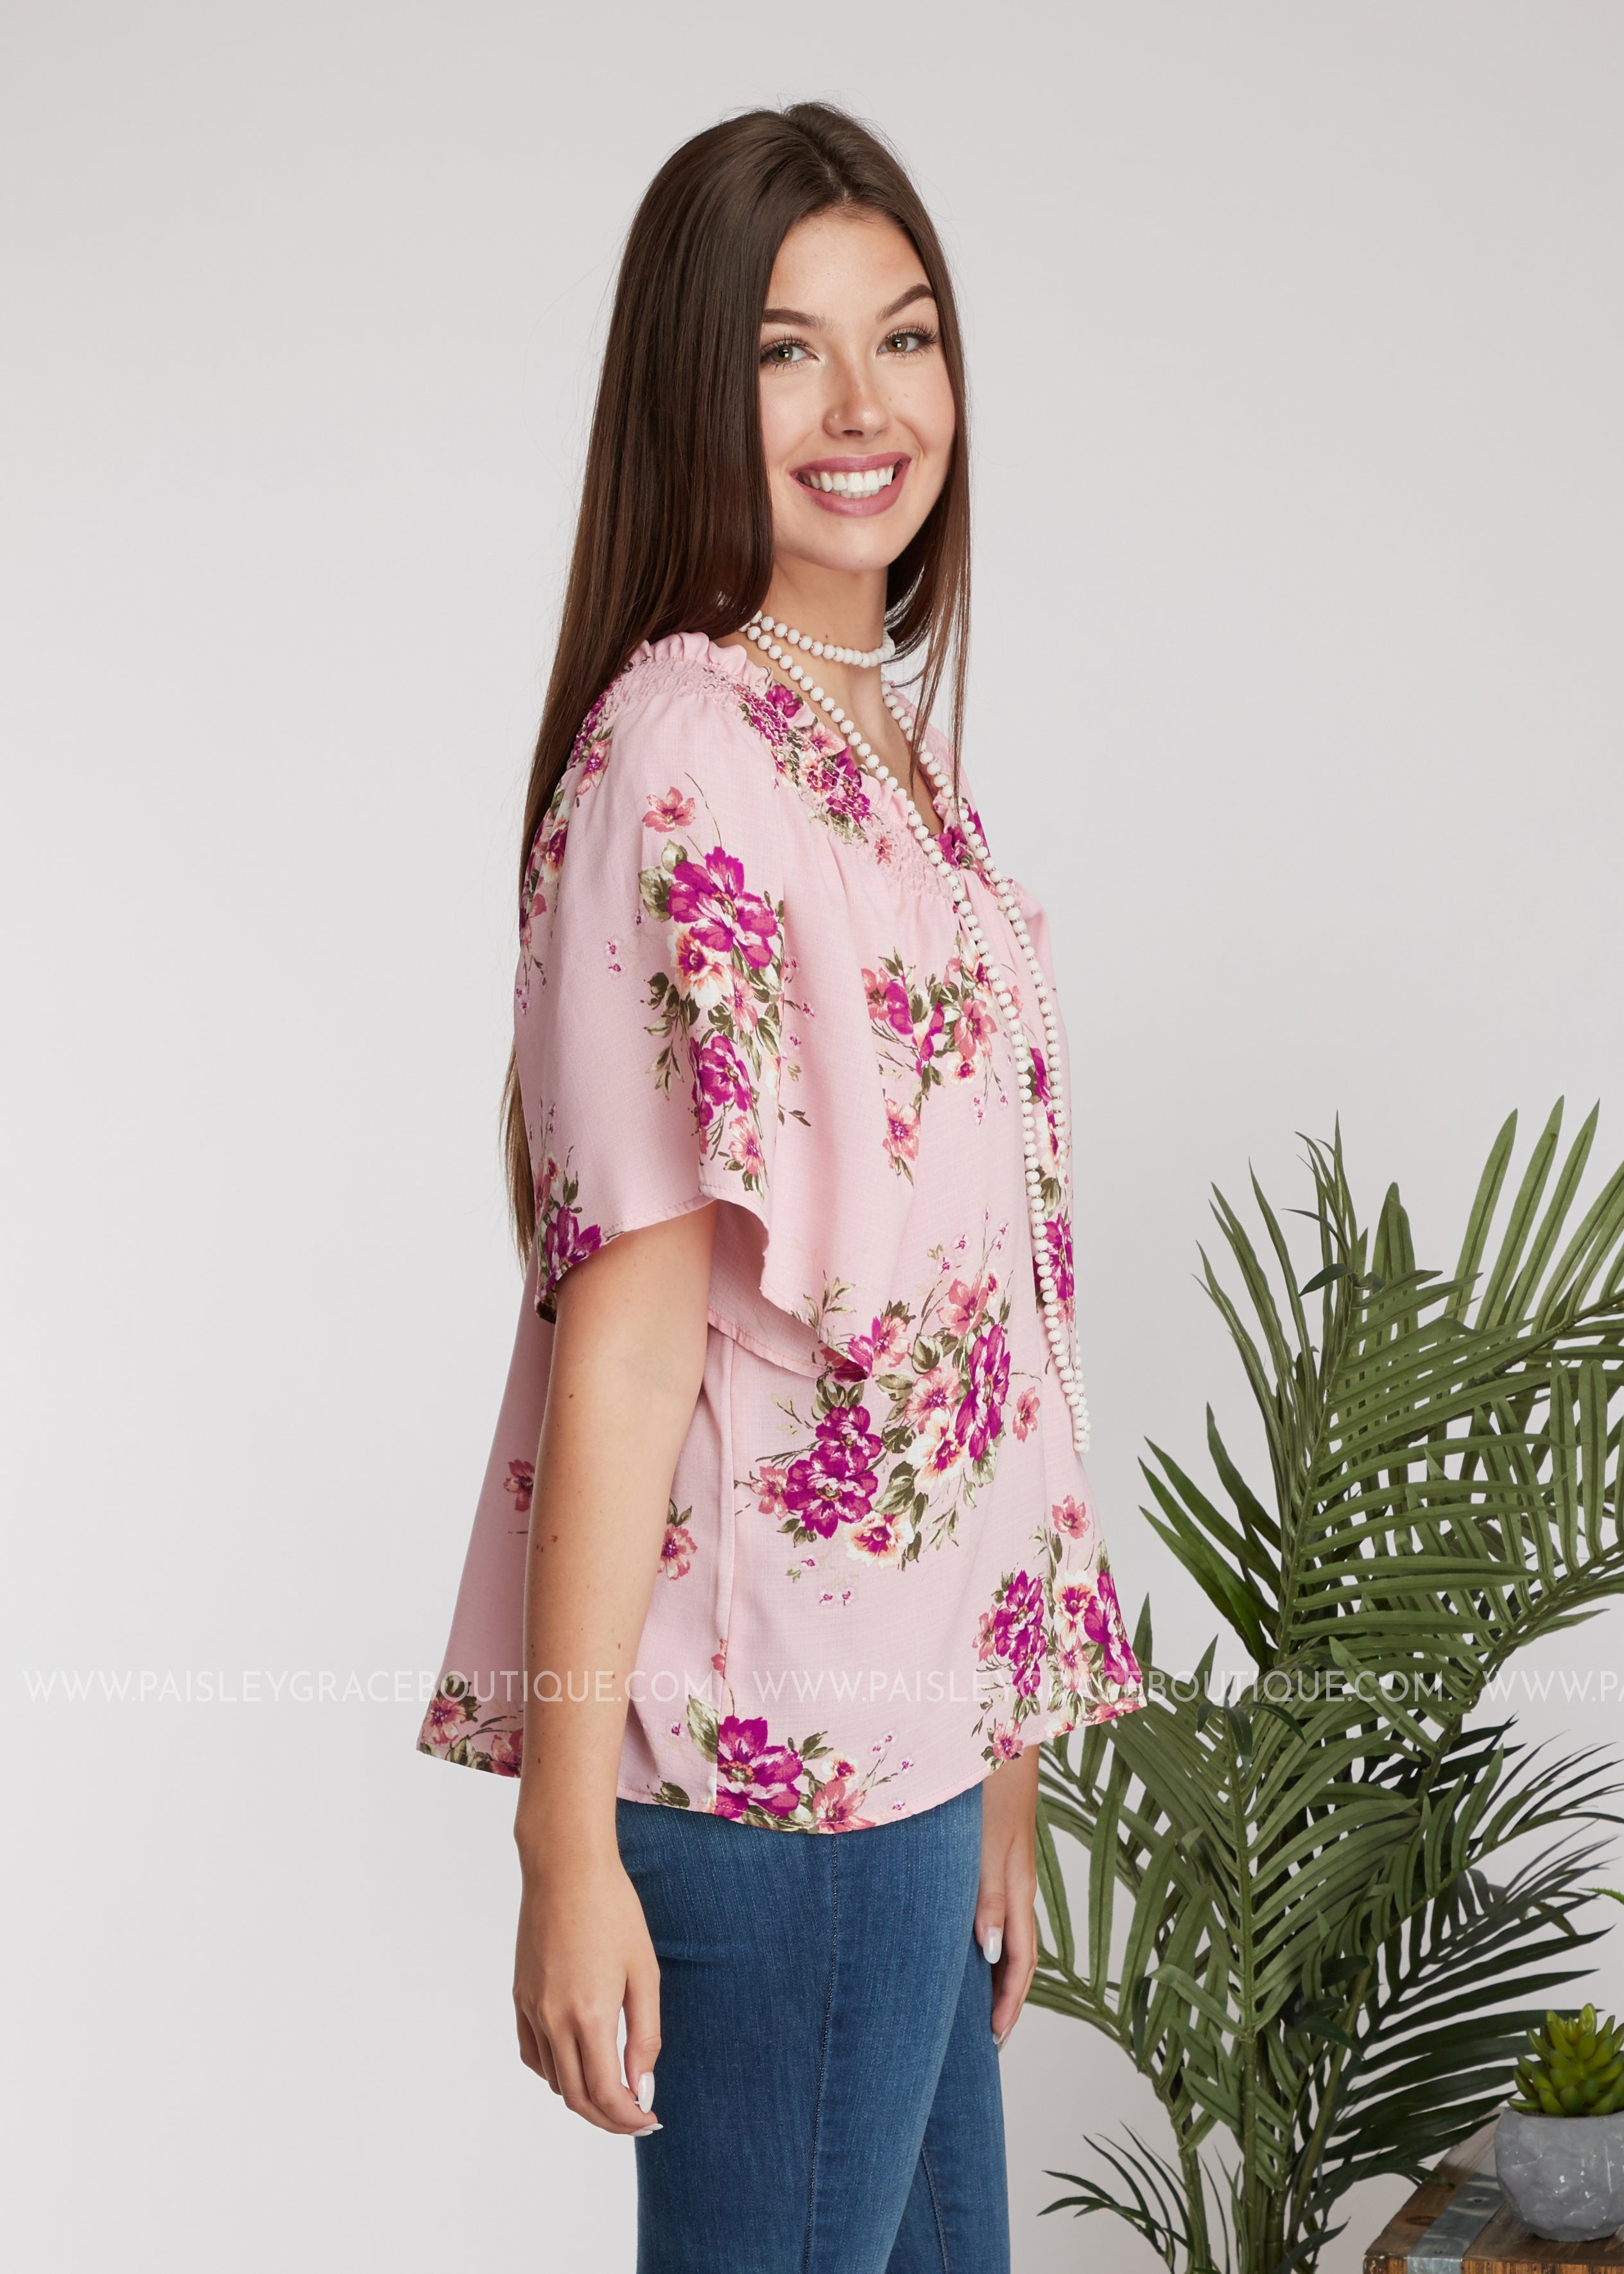 Penney Lane Top- Pink - FINAL SALE